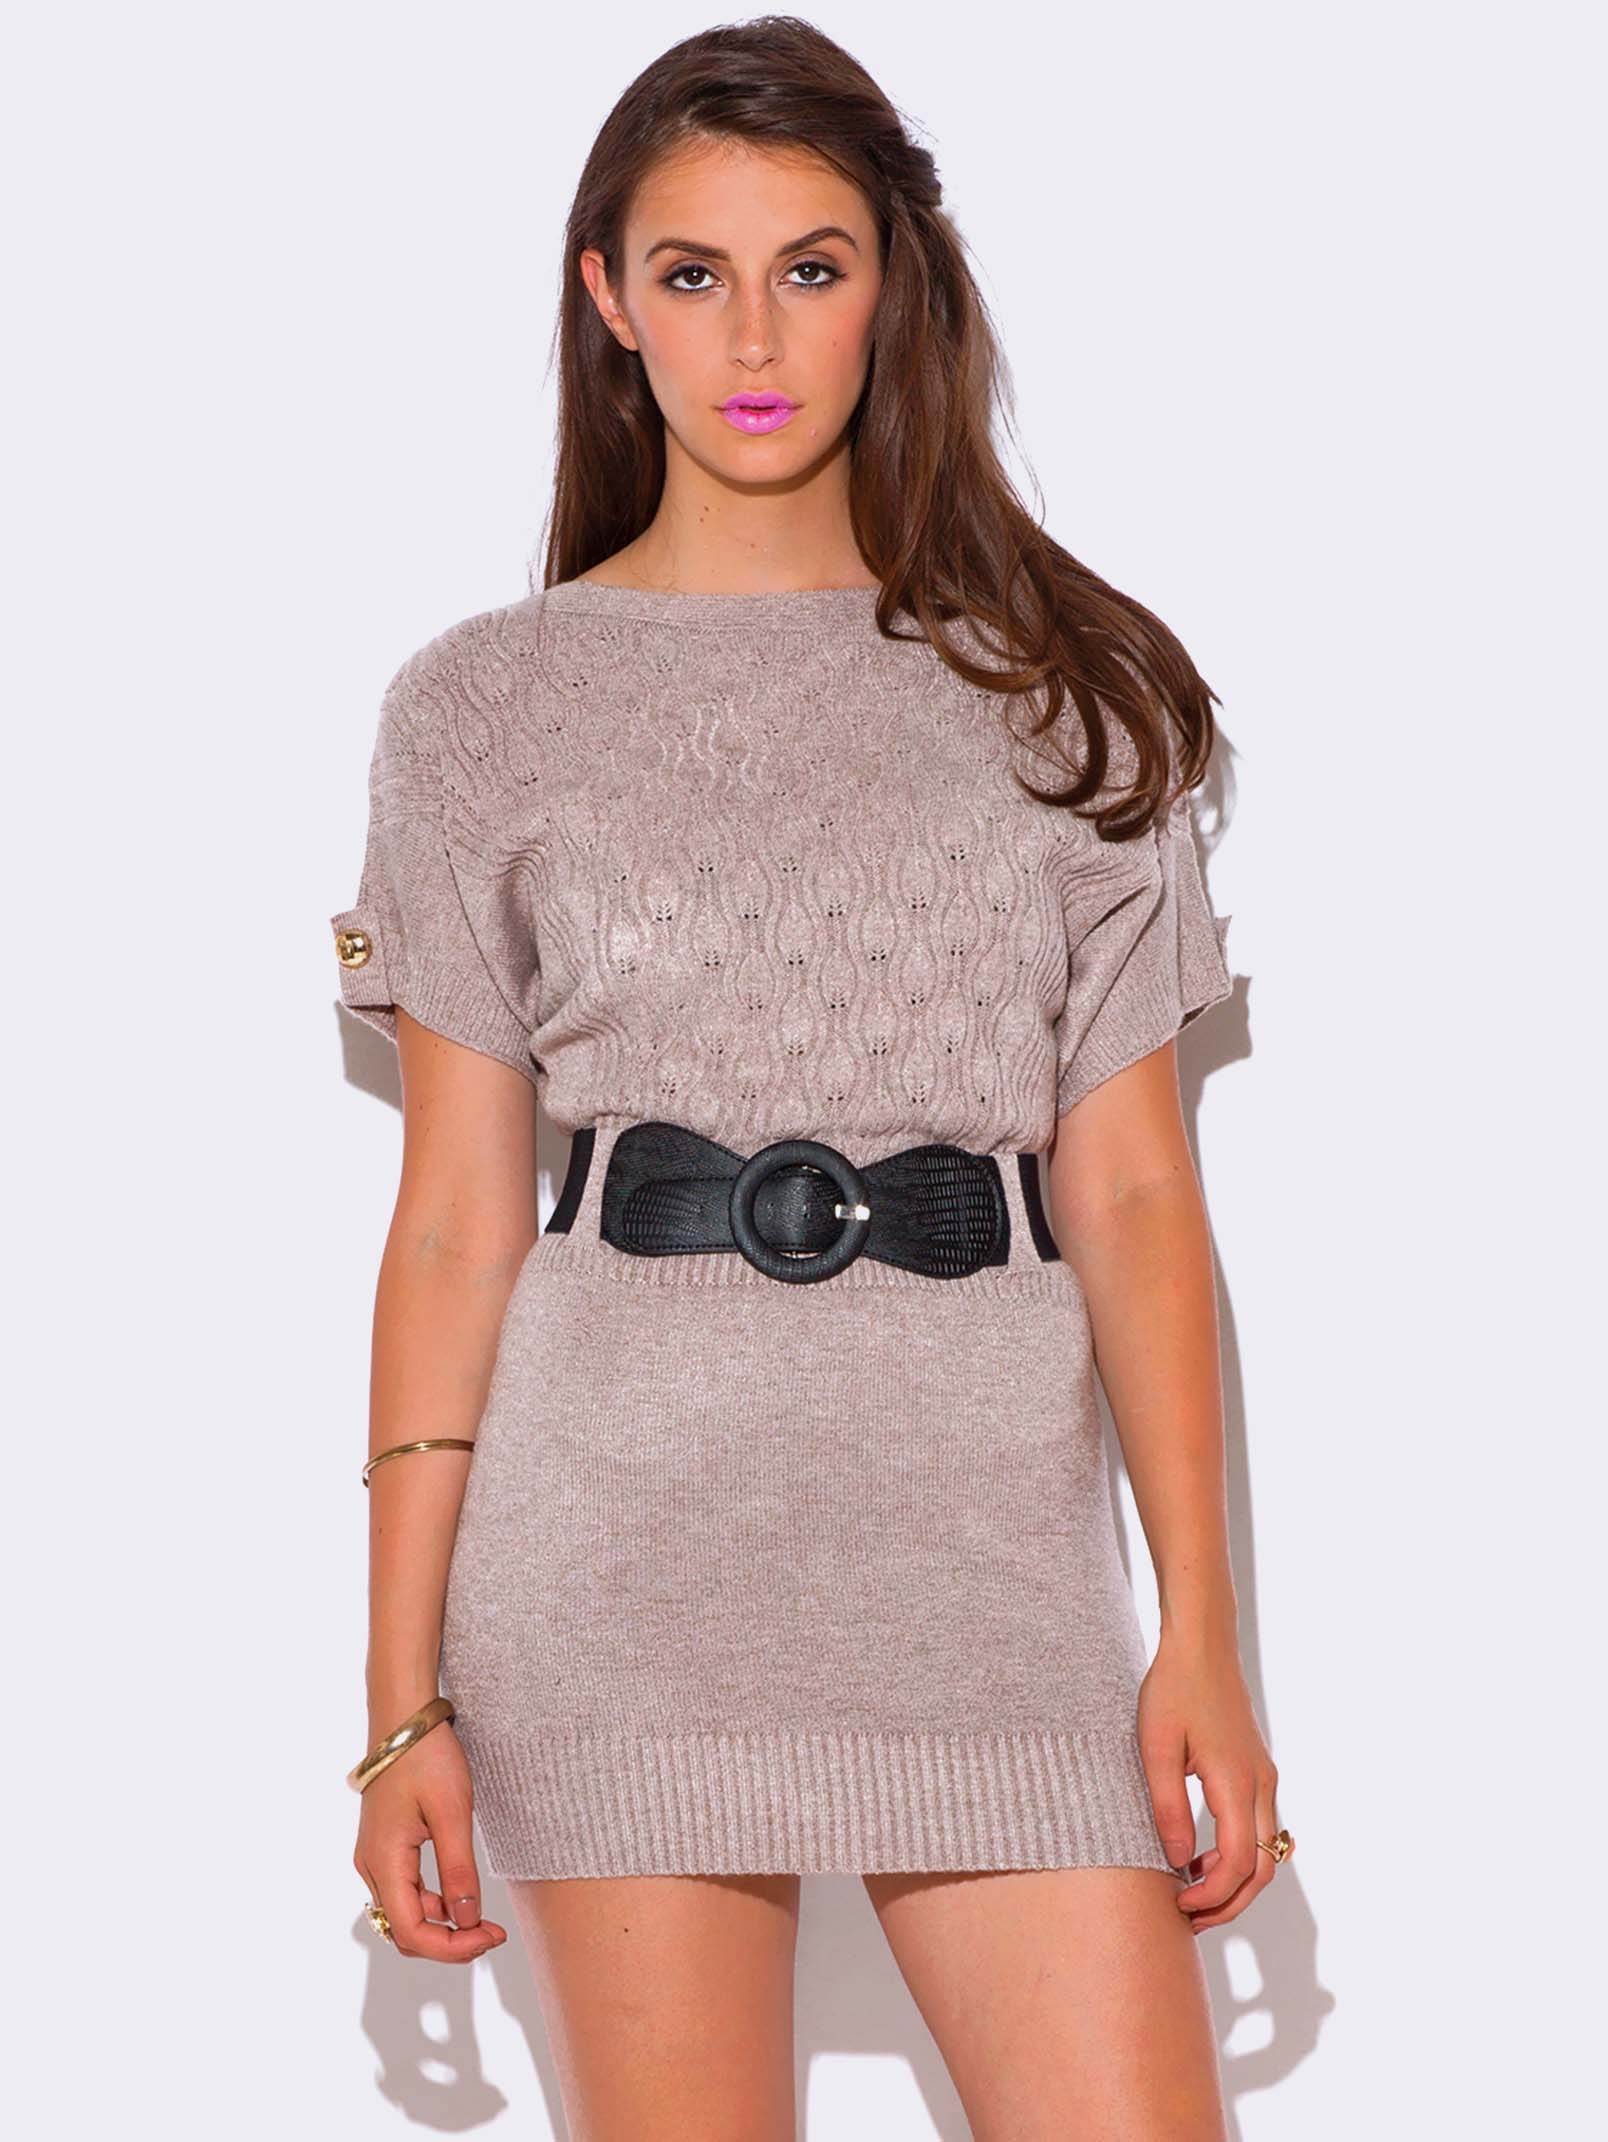 BEIGE CABLE KNIT DOLMAN SLEEVE SWEATER DRESS - ModishOnline.com